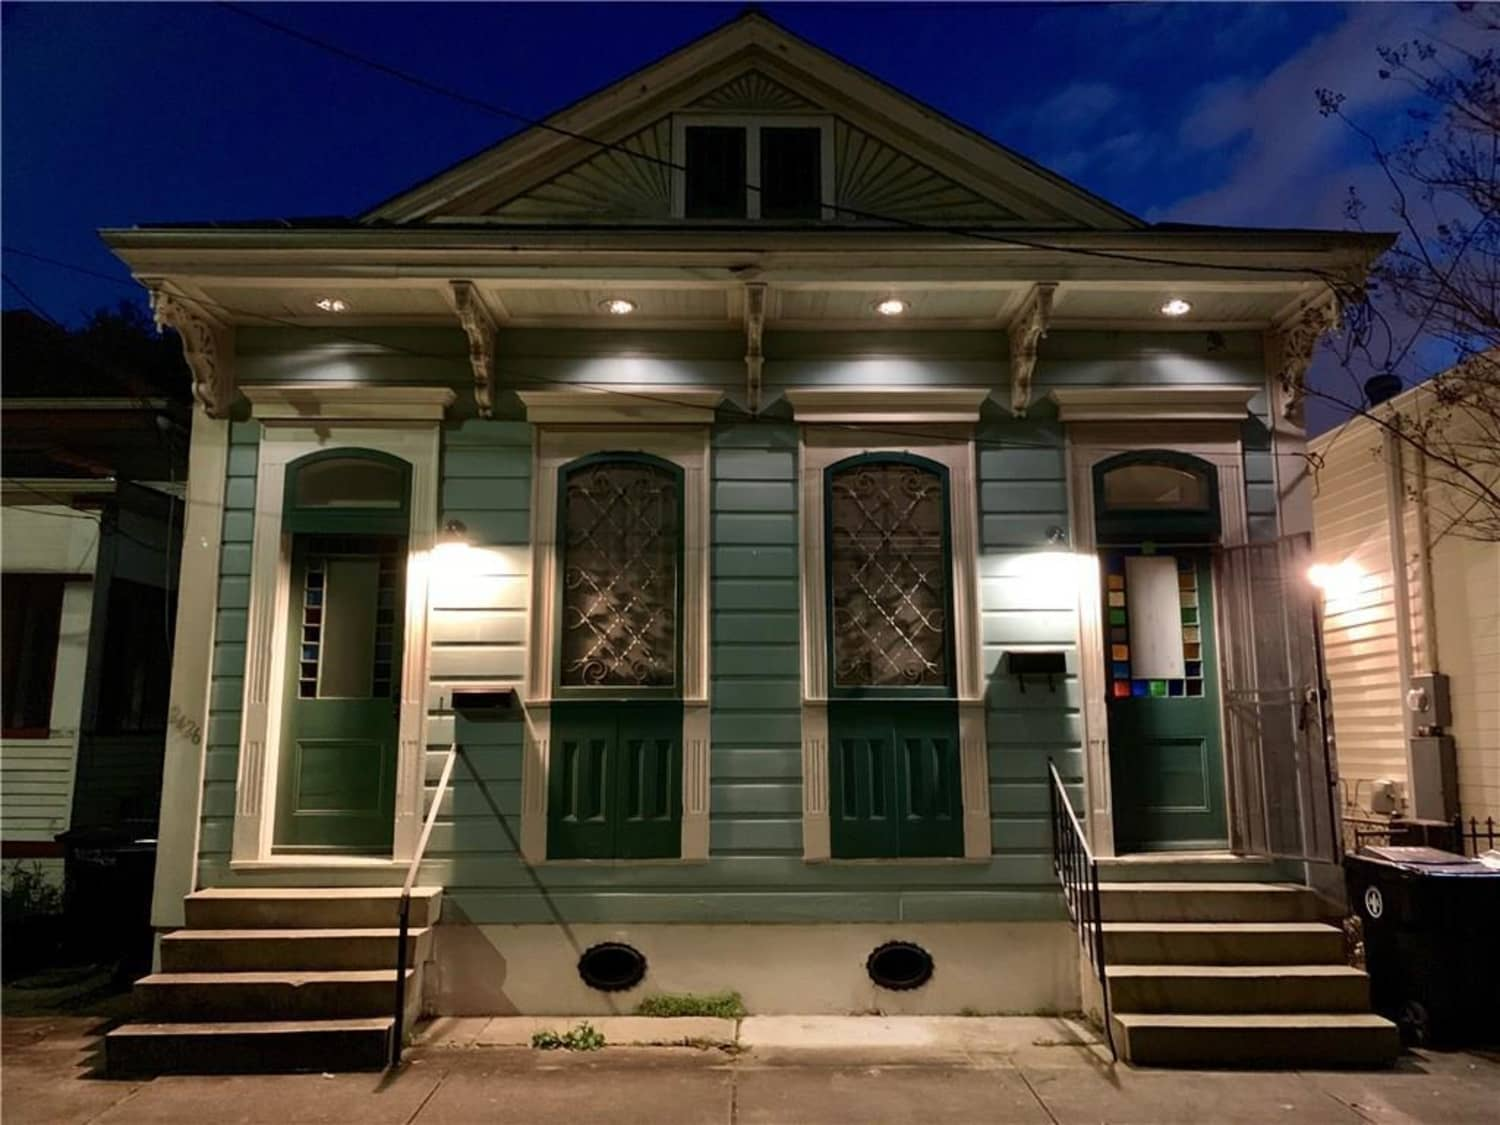 Double Shotgun Houses For Sale In New Orleans 2424 N Rampart St Apartment Therapy